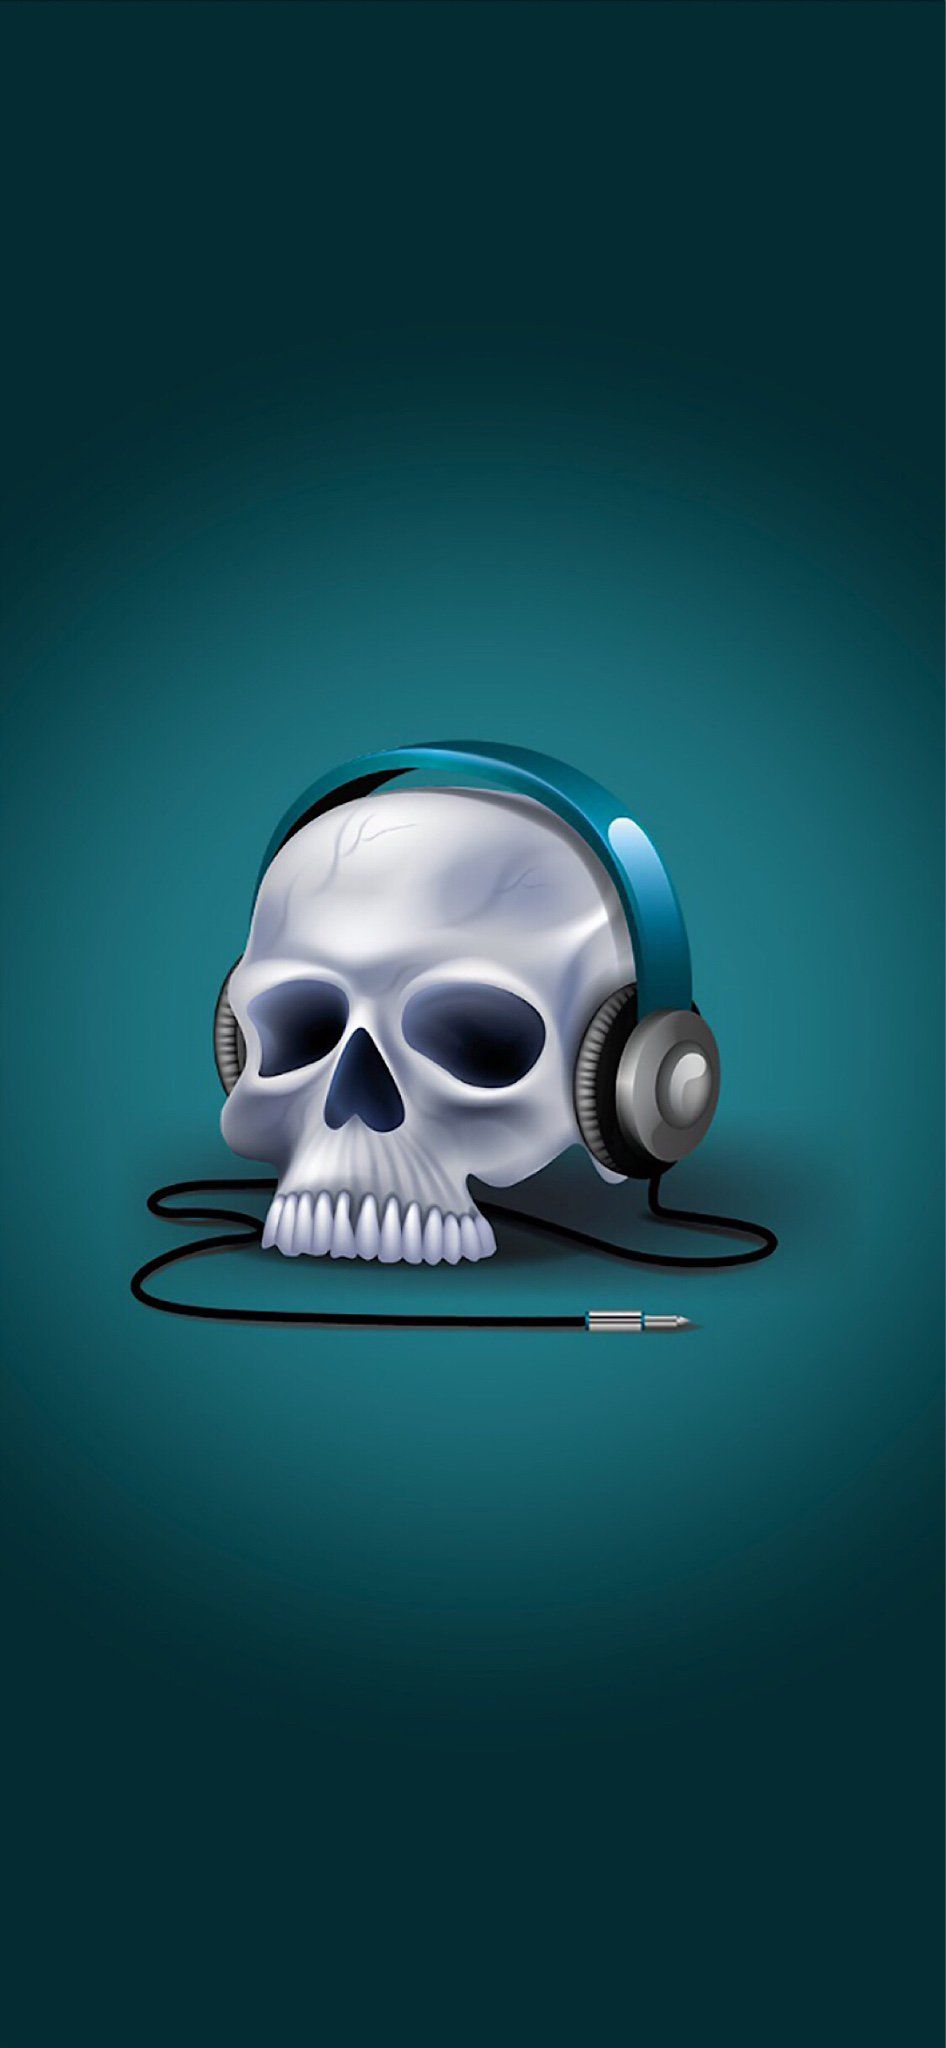 LOVER OF MUSIC | Autos | Skull wallpaper iphone, Iphone